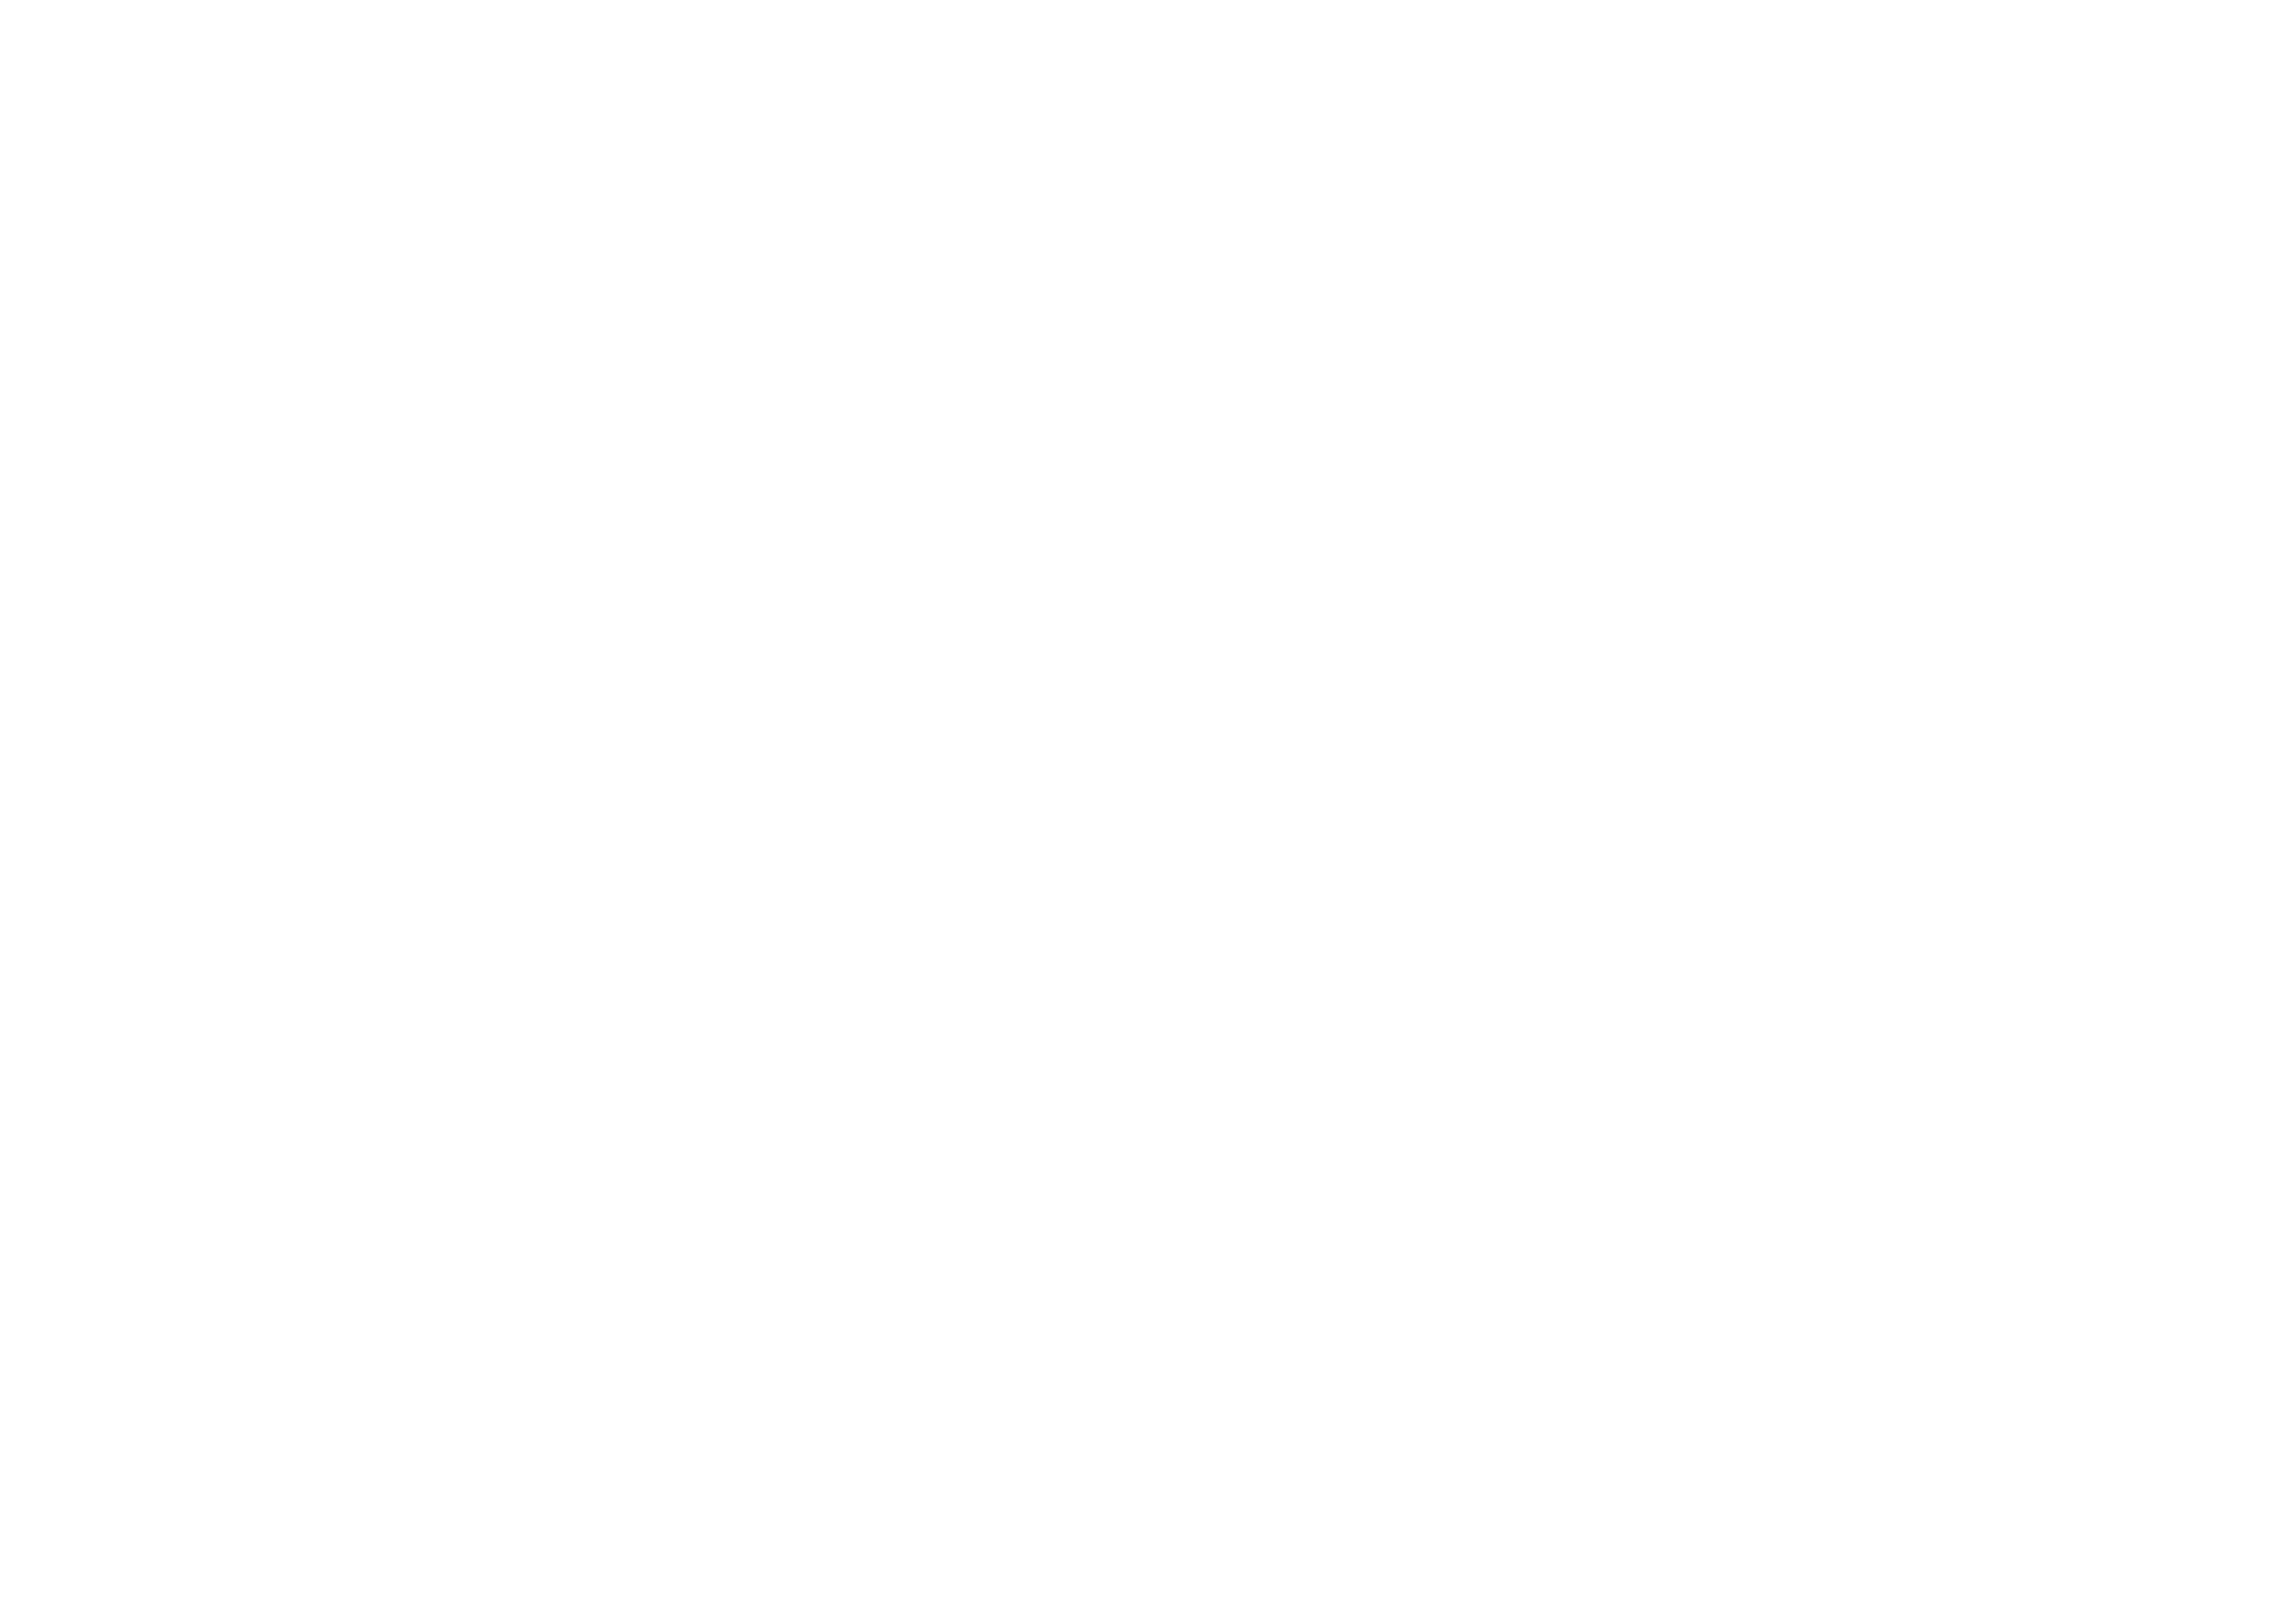 Trieu Xuan Group